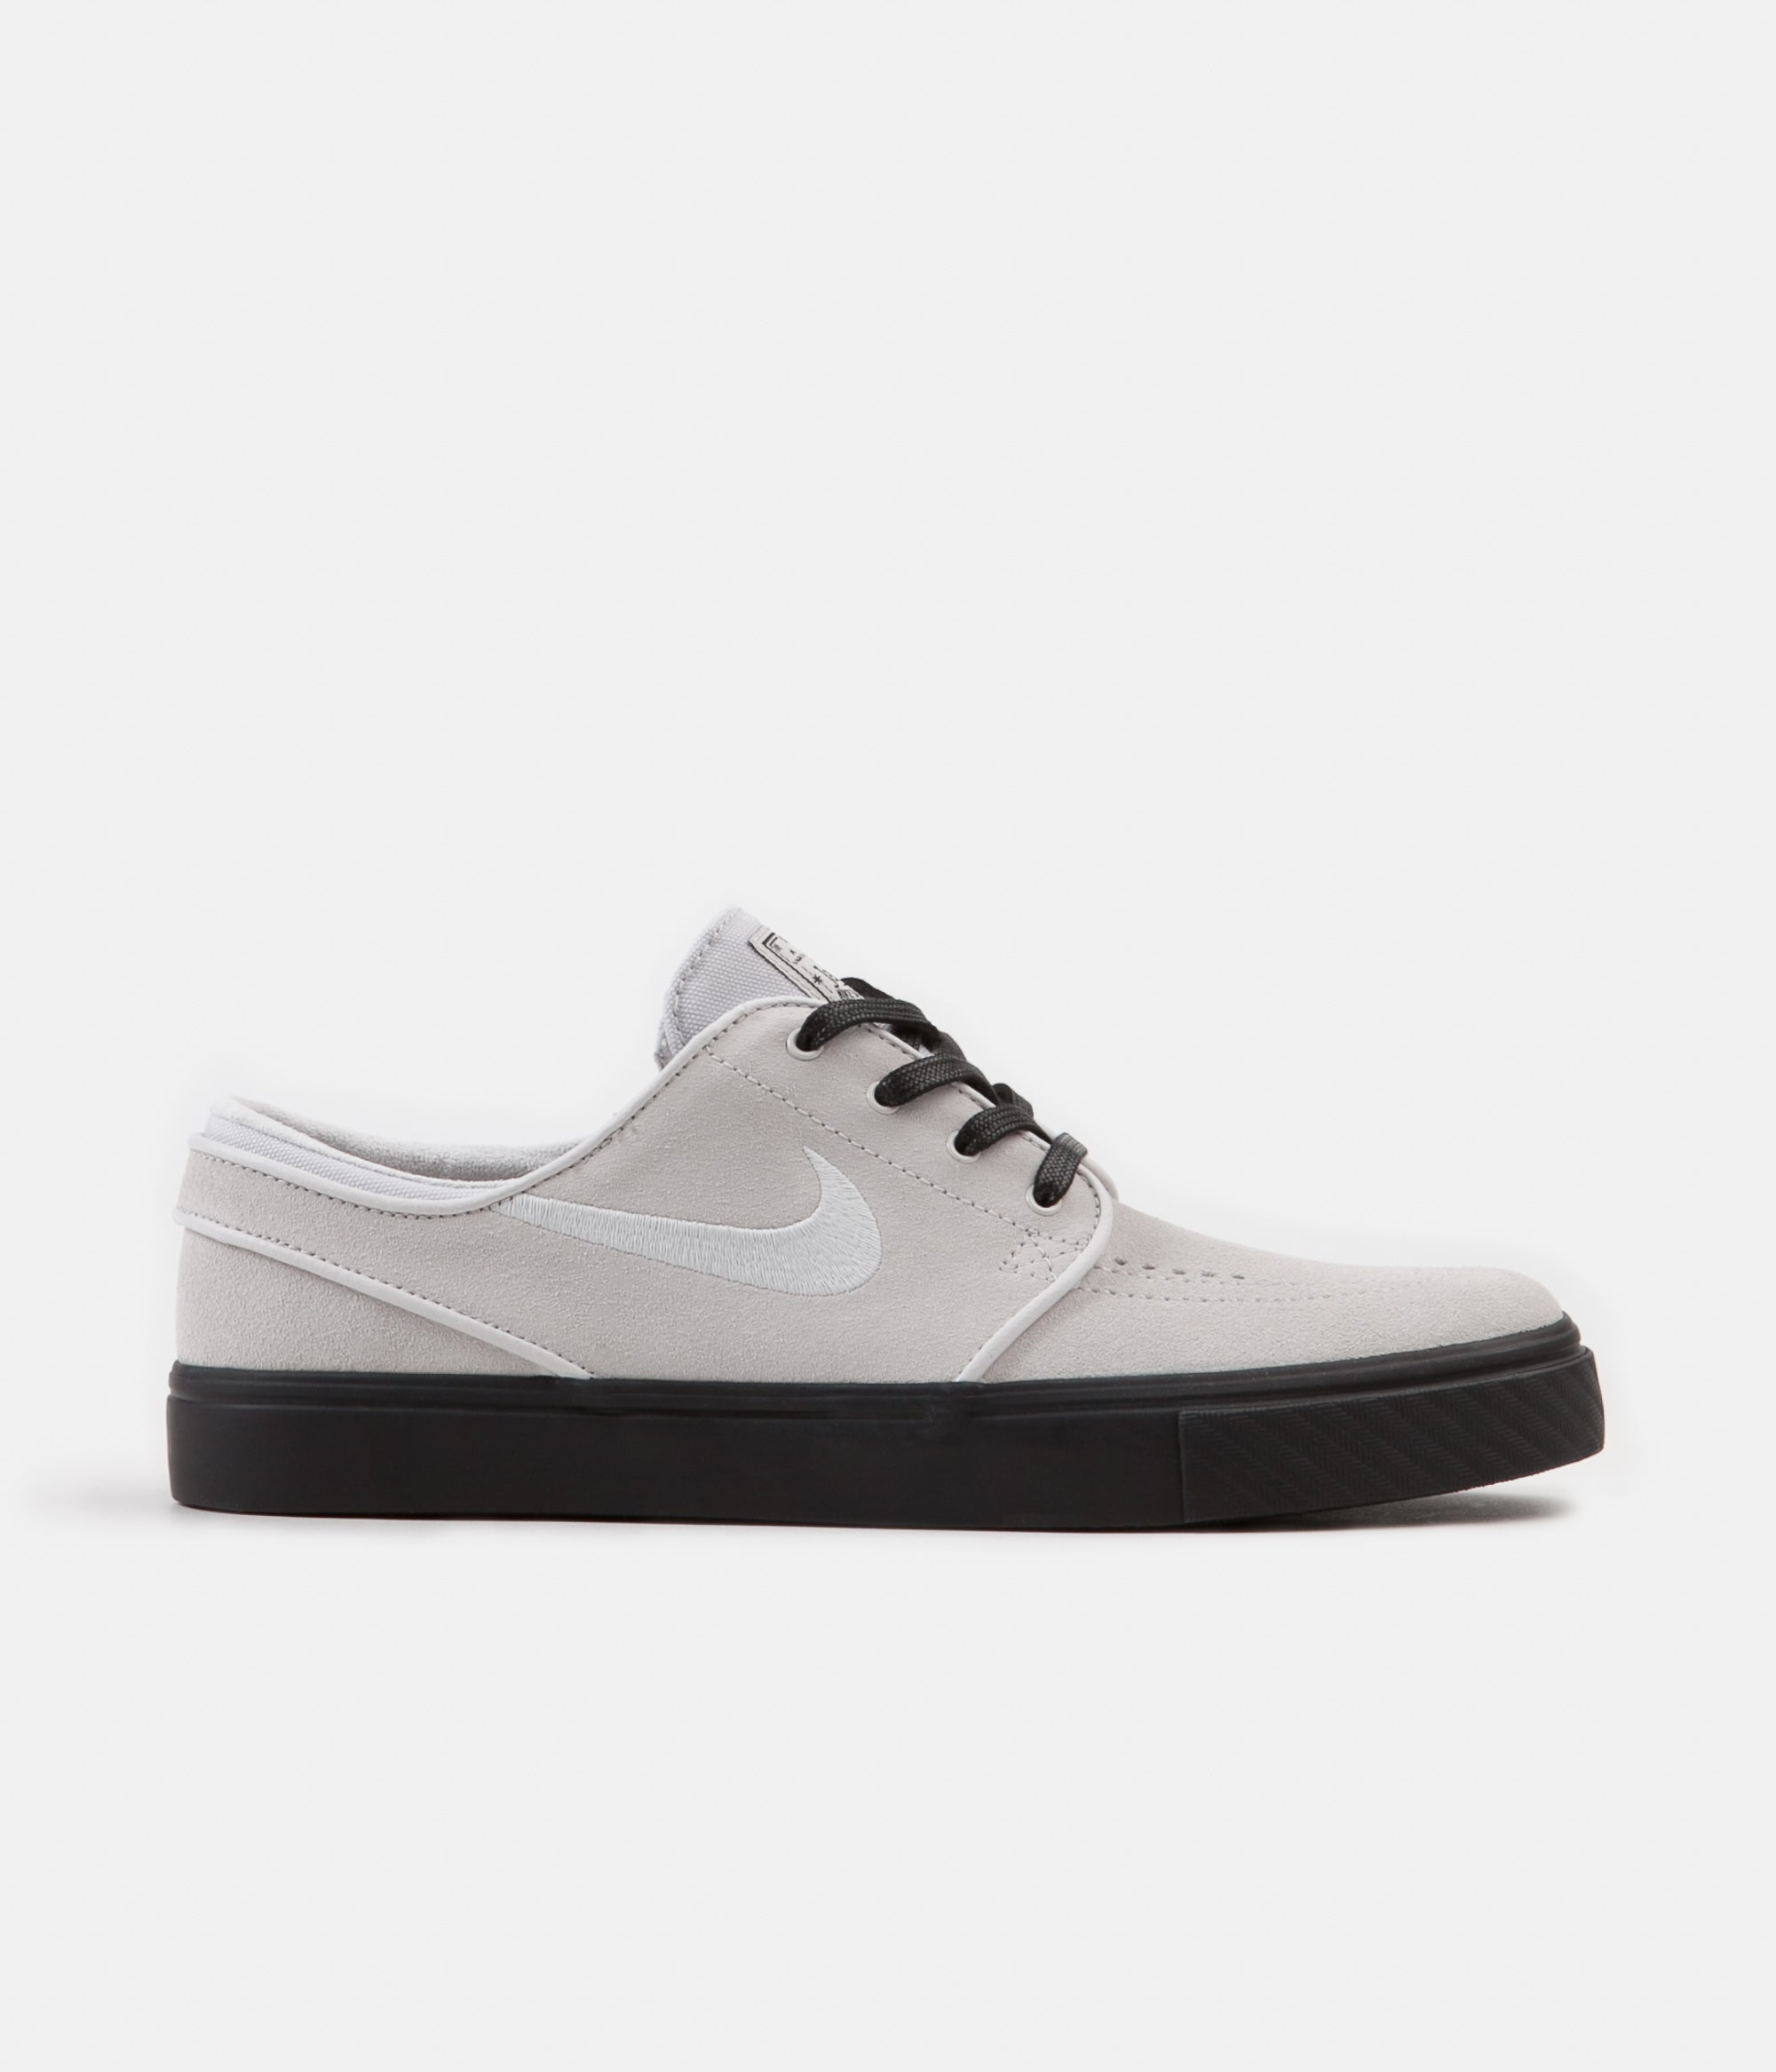 wholesale dealer d0747 0df98 Nike SB Stefan Janoski Shoes - Vast Grey   Vast Grey - Black